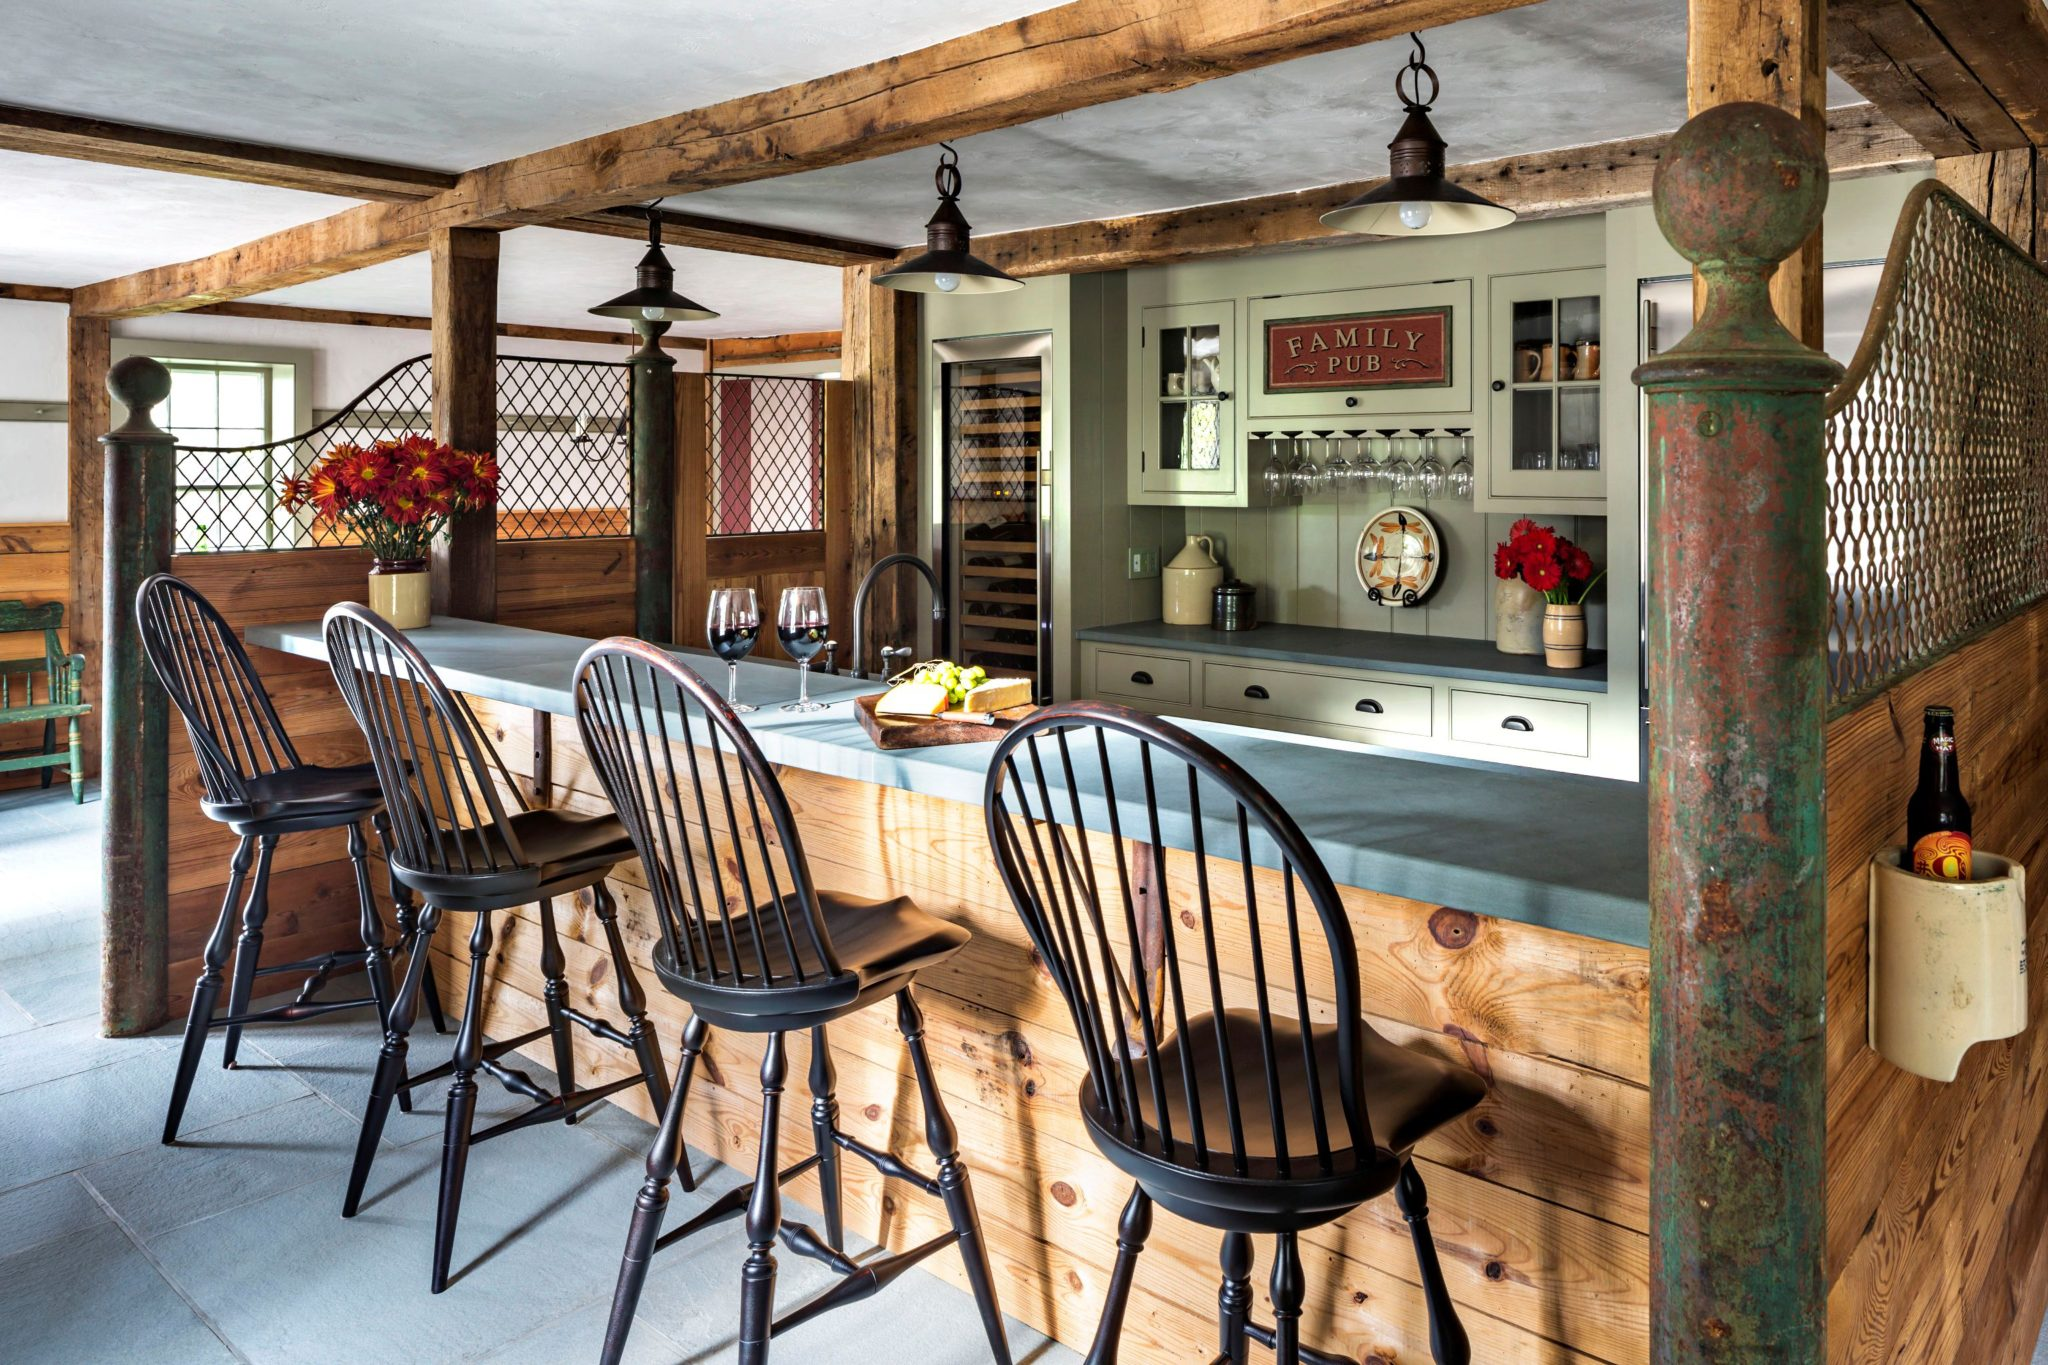 A Stable Repurposed as a Pub by Haver & Skolnick Architects